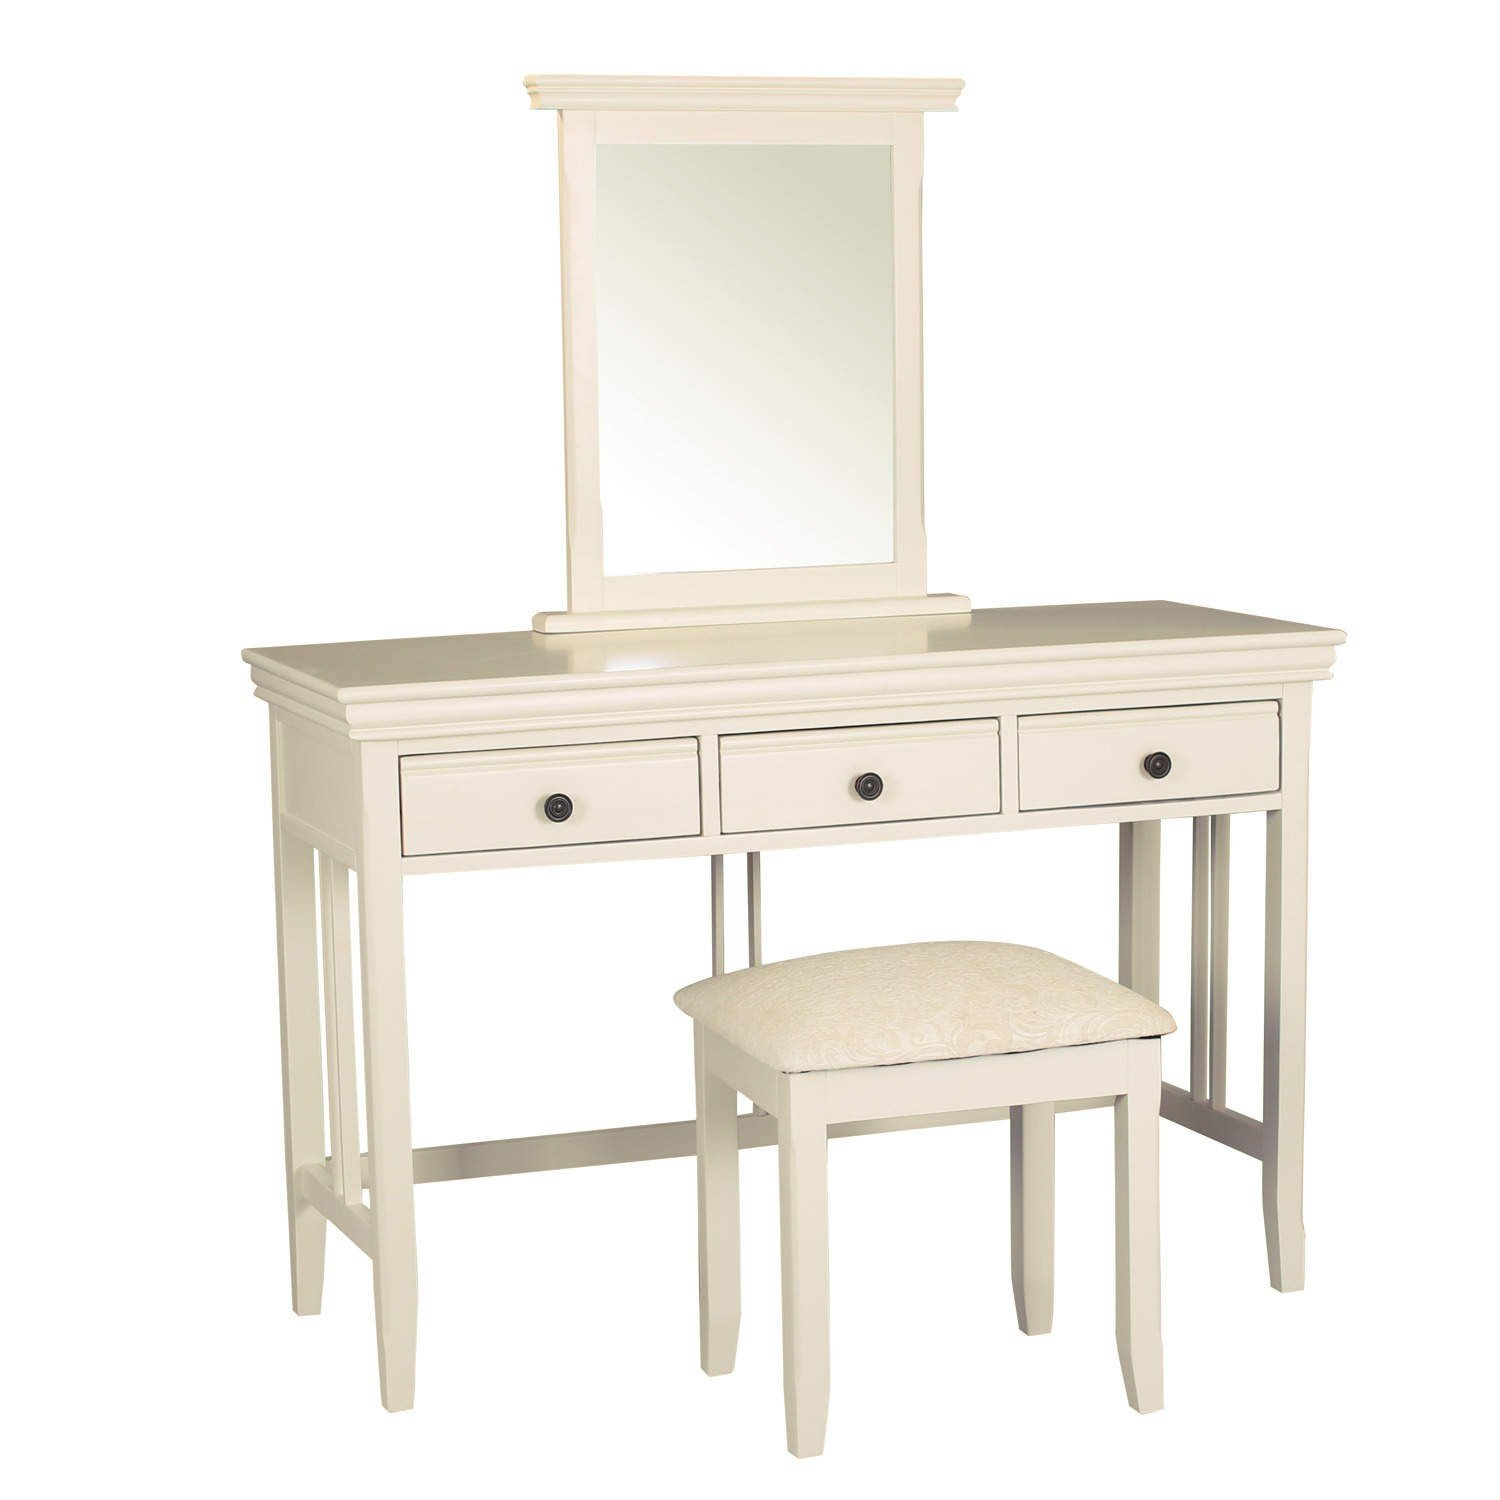 Savannah Dressing Table with 3 Drawers in Ivory/Cream - Dressing ...